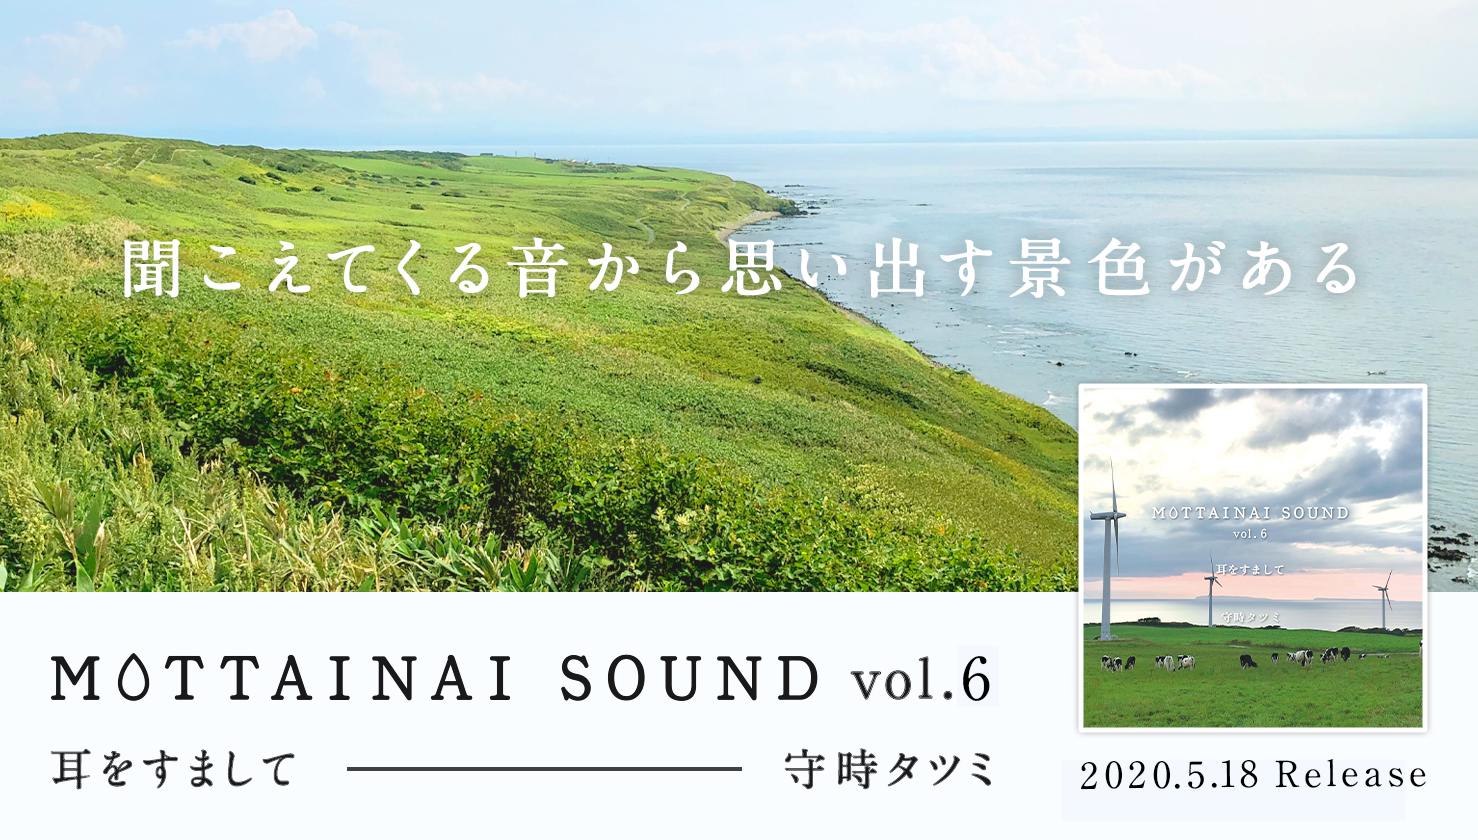 mottainaisound_vol6